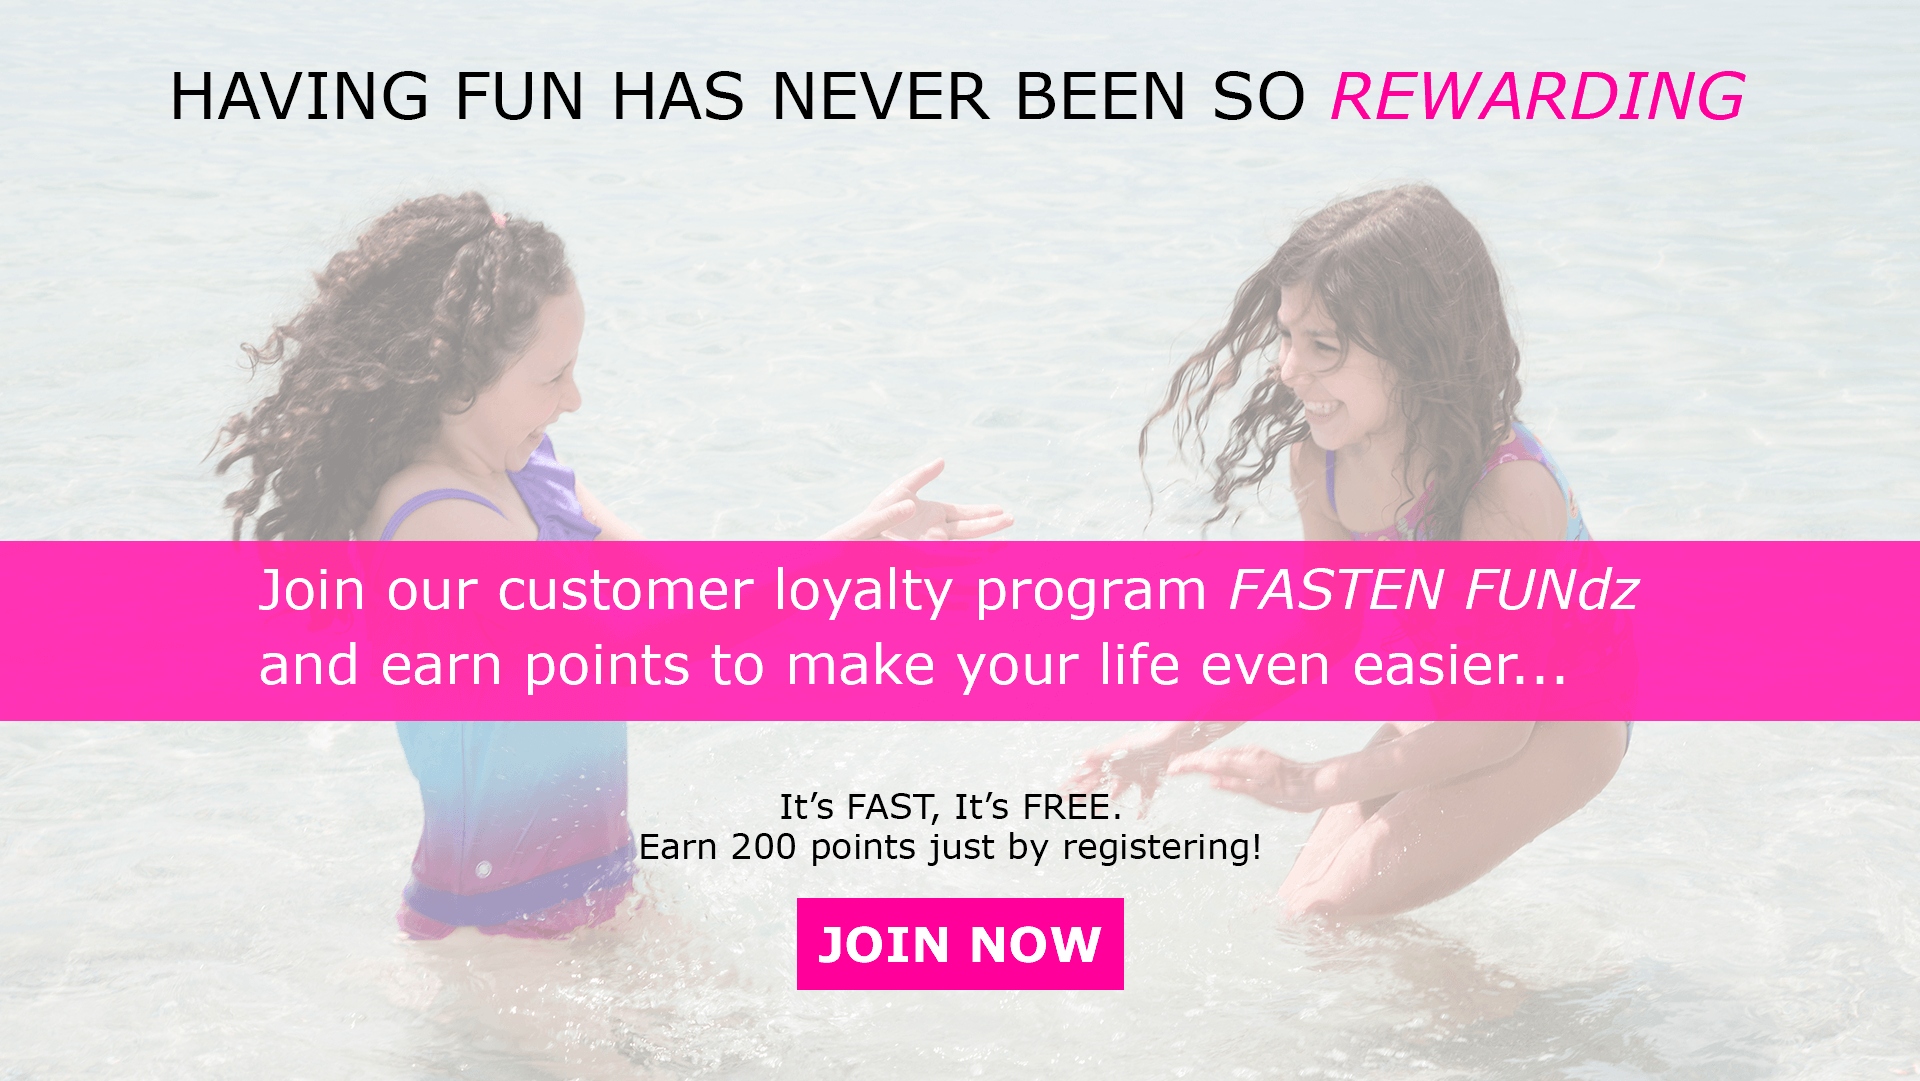 Having fun has never been so rewarding! Join our customer loyalty program and earn points to make your life even easier...